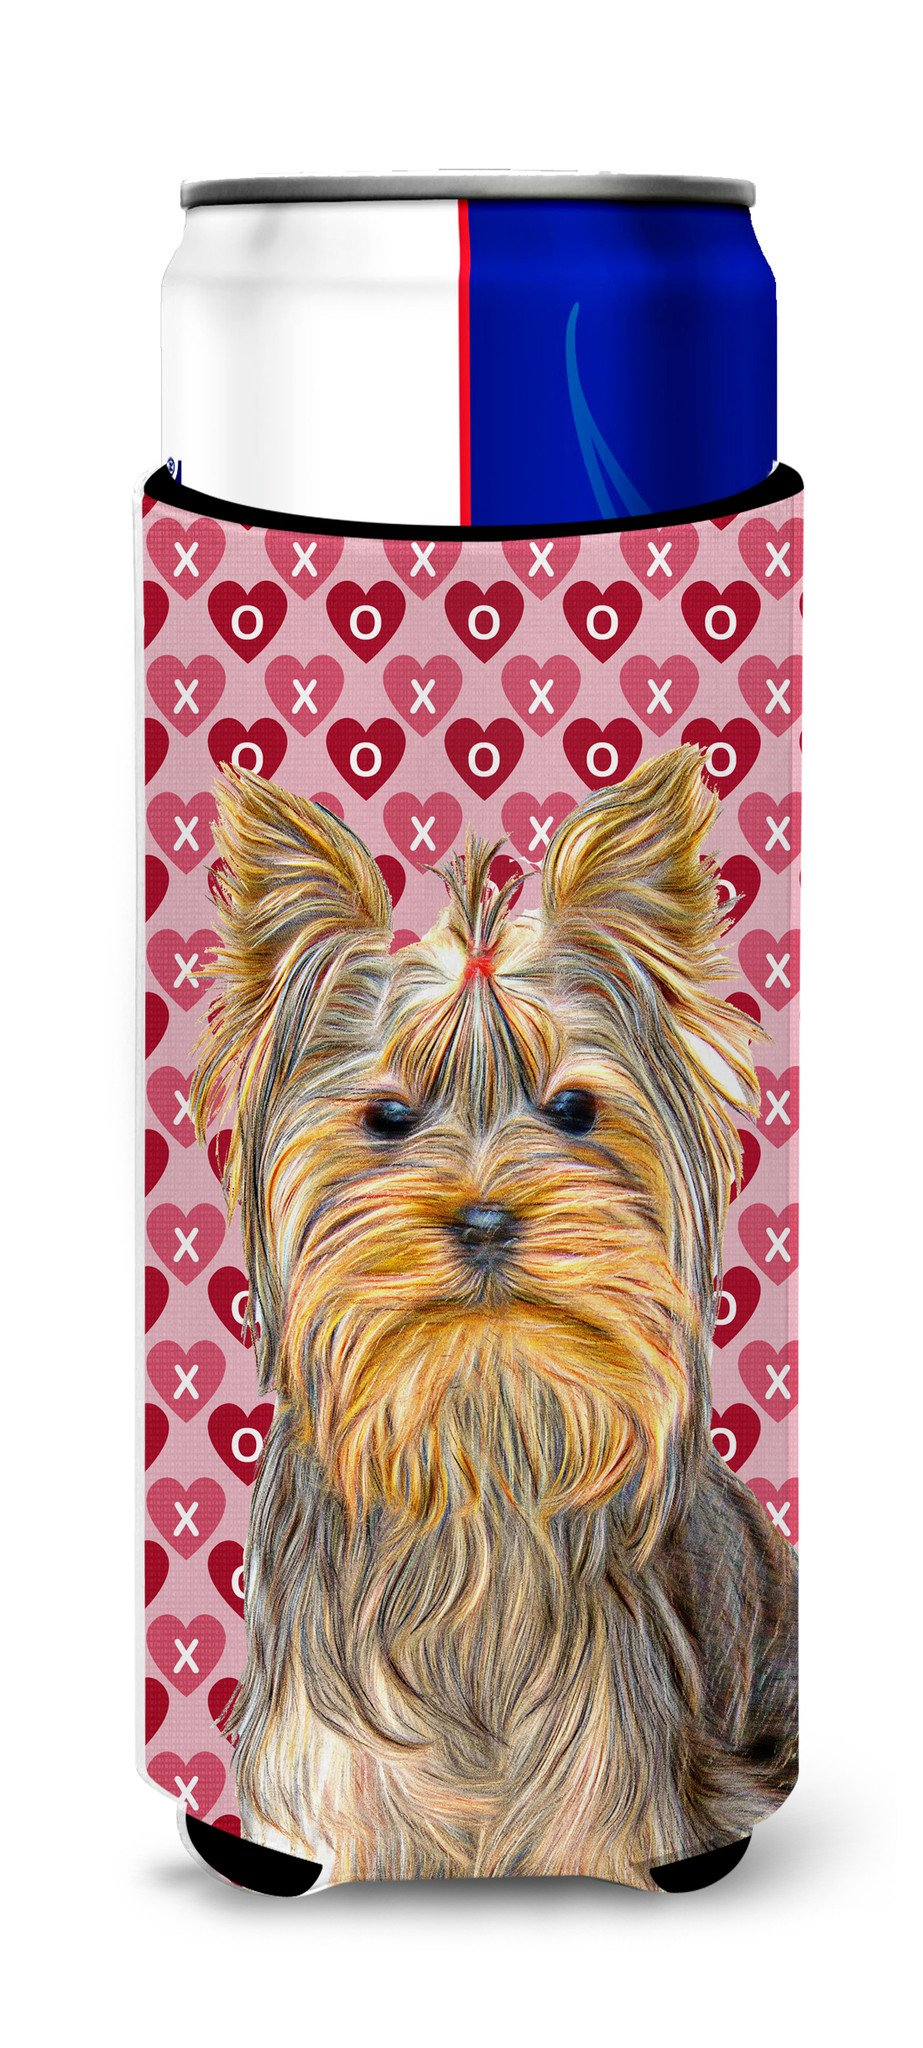 Hearts Love and Valentine's Day Yorkie / Yorkshire Terrier Ultra Beverage Insulators for slim cans KJ1191MUK by Caroline's Treasures